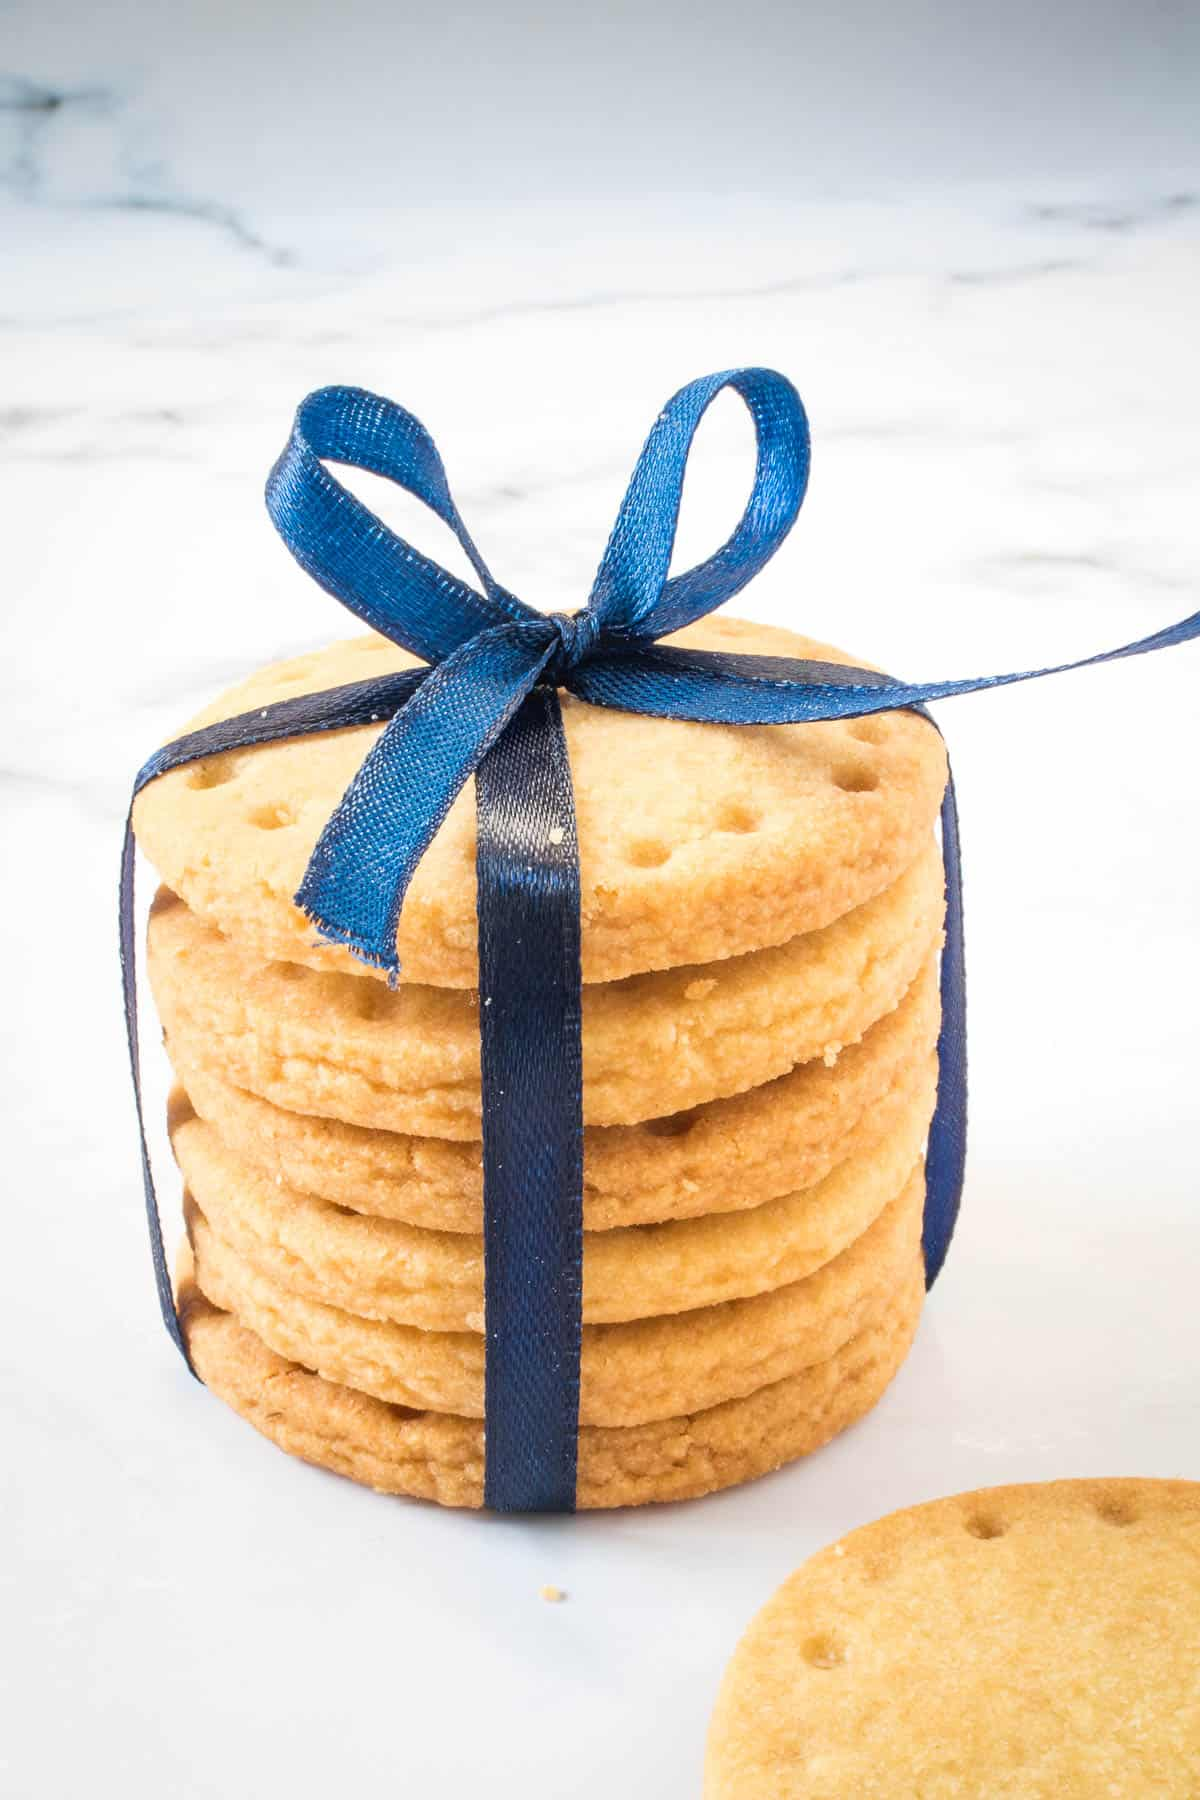 A stack of round cookies tied in blue ribbon